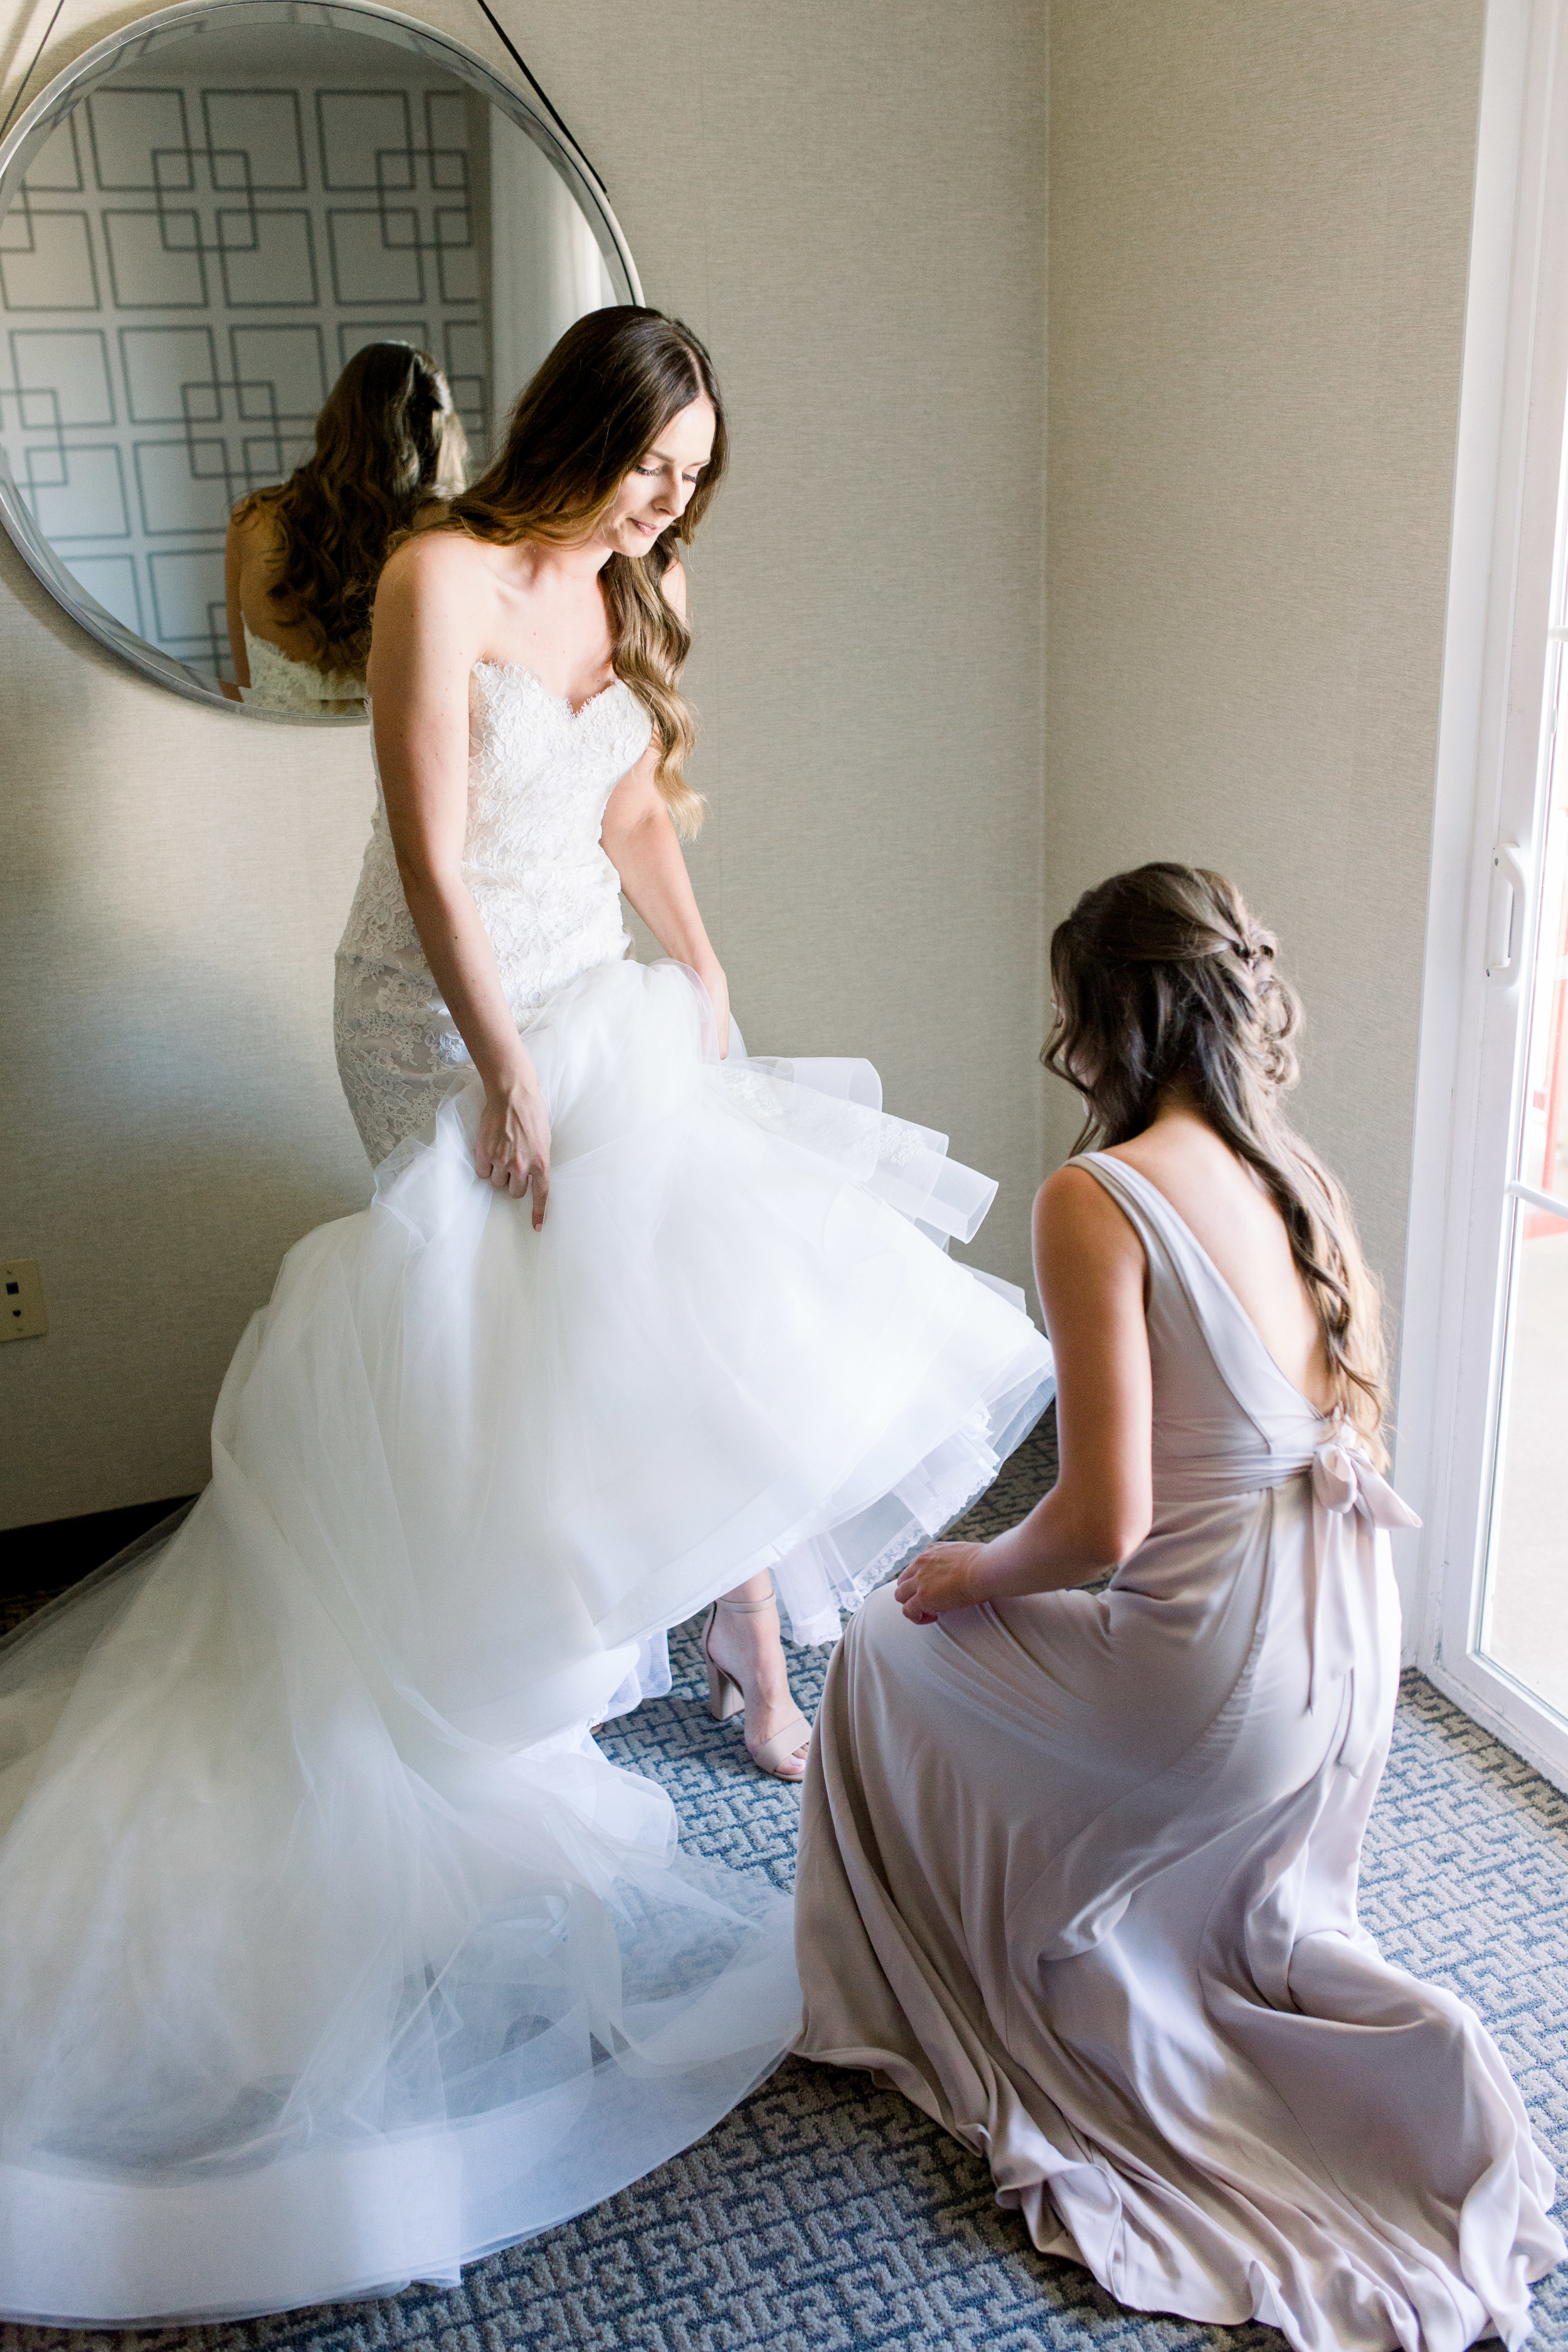 muriettas-well-wedding-in-livermore-california-11.jpg